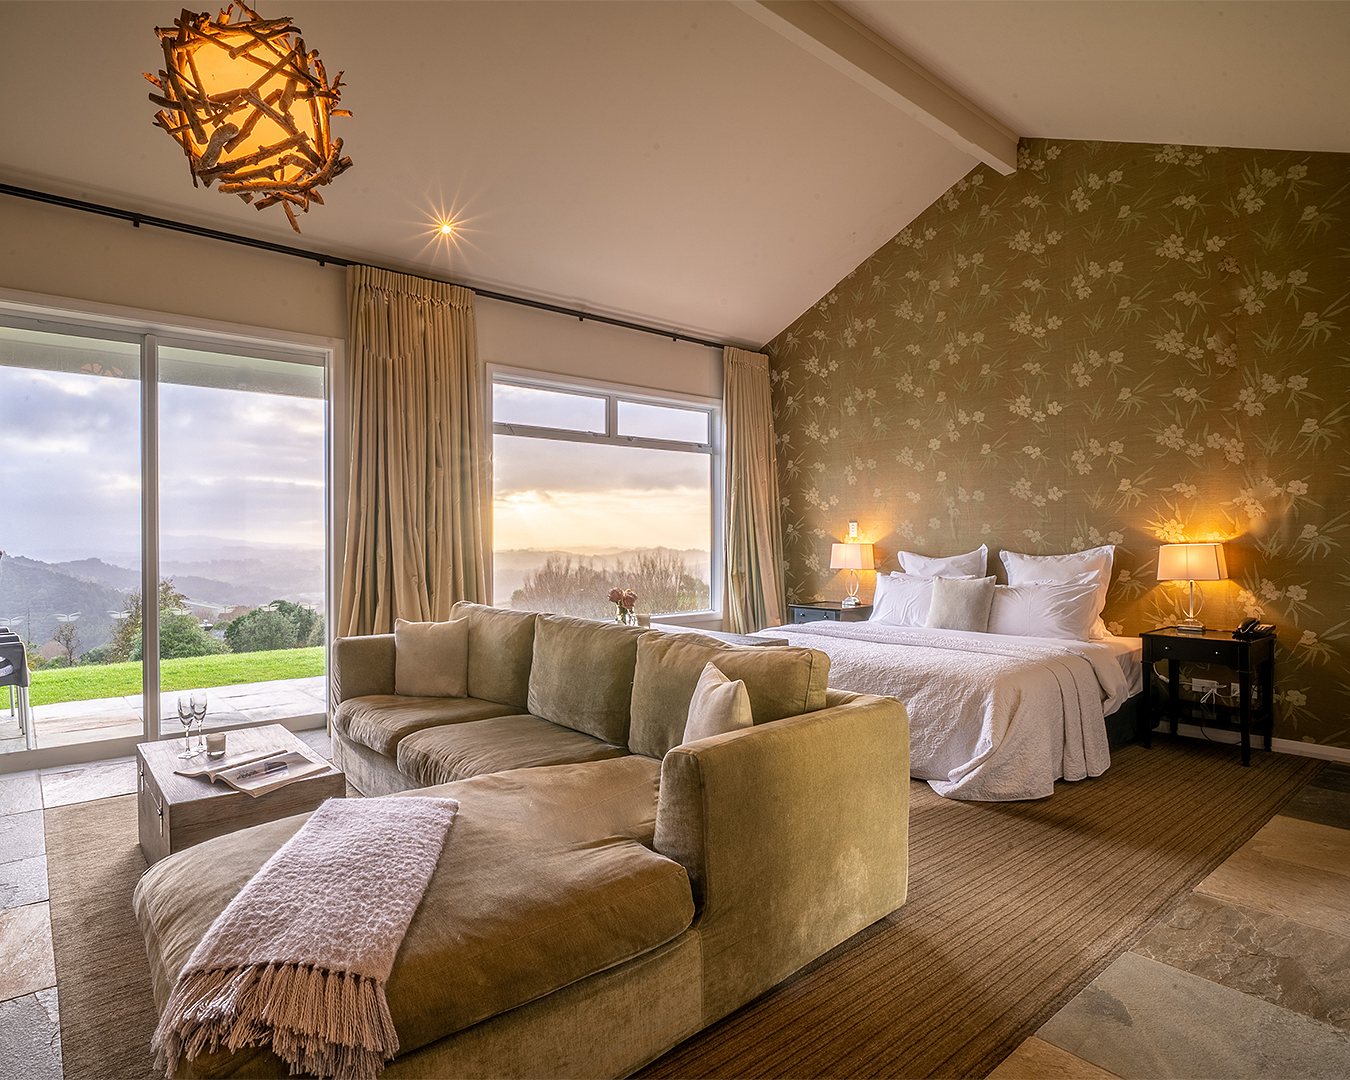 A sumptuous room at the Woodhouse Mountain Lodge, one of the best luxury hotels in New Zealand.